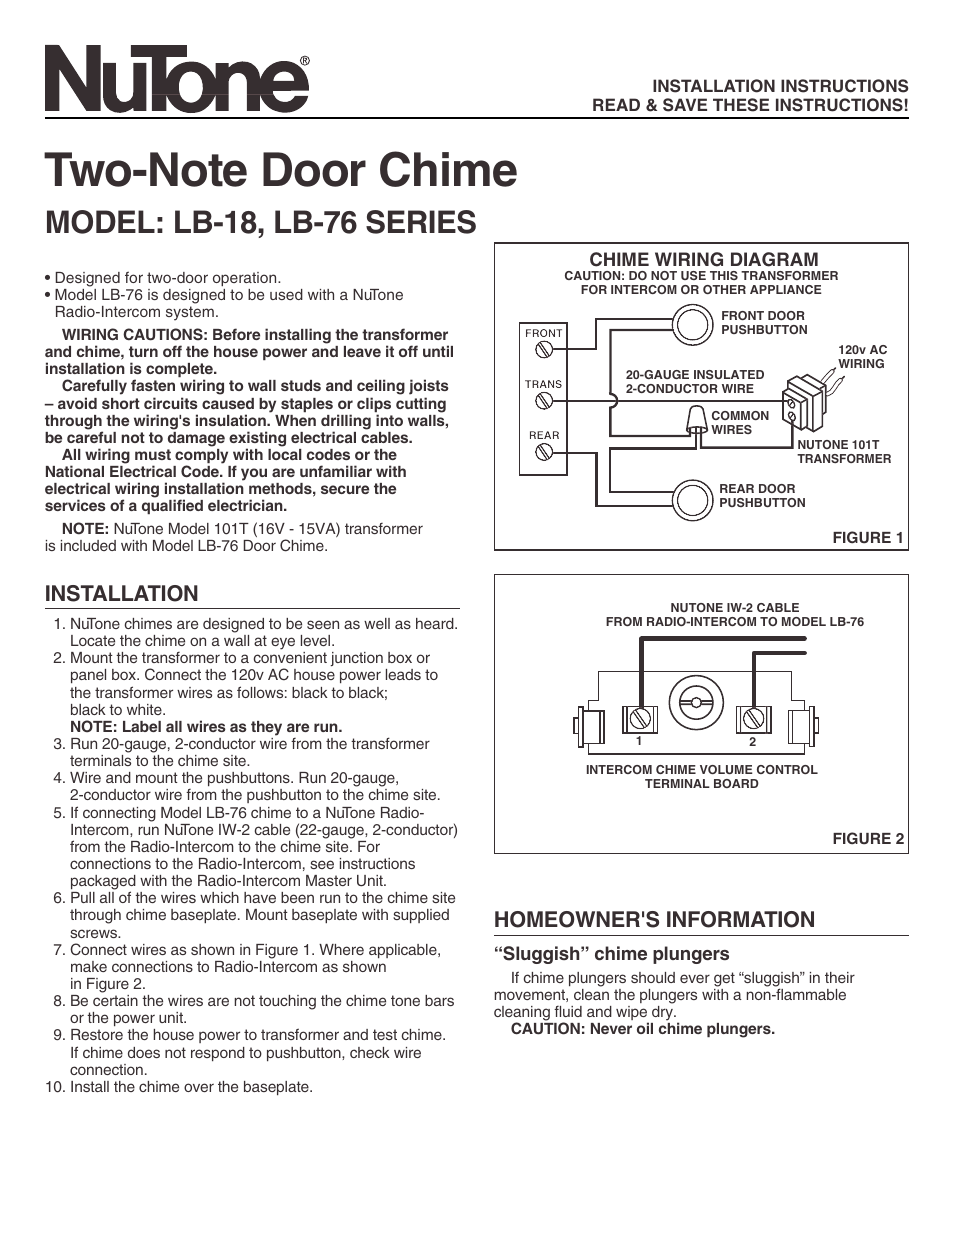 NuTone TWO-NOTE DOOR CHIME LB-76 User Manual | 2 pages | Also for: TWO-NOTE  DOOR CHIME LB-18